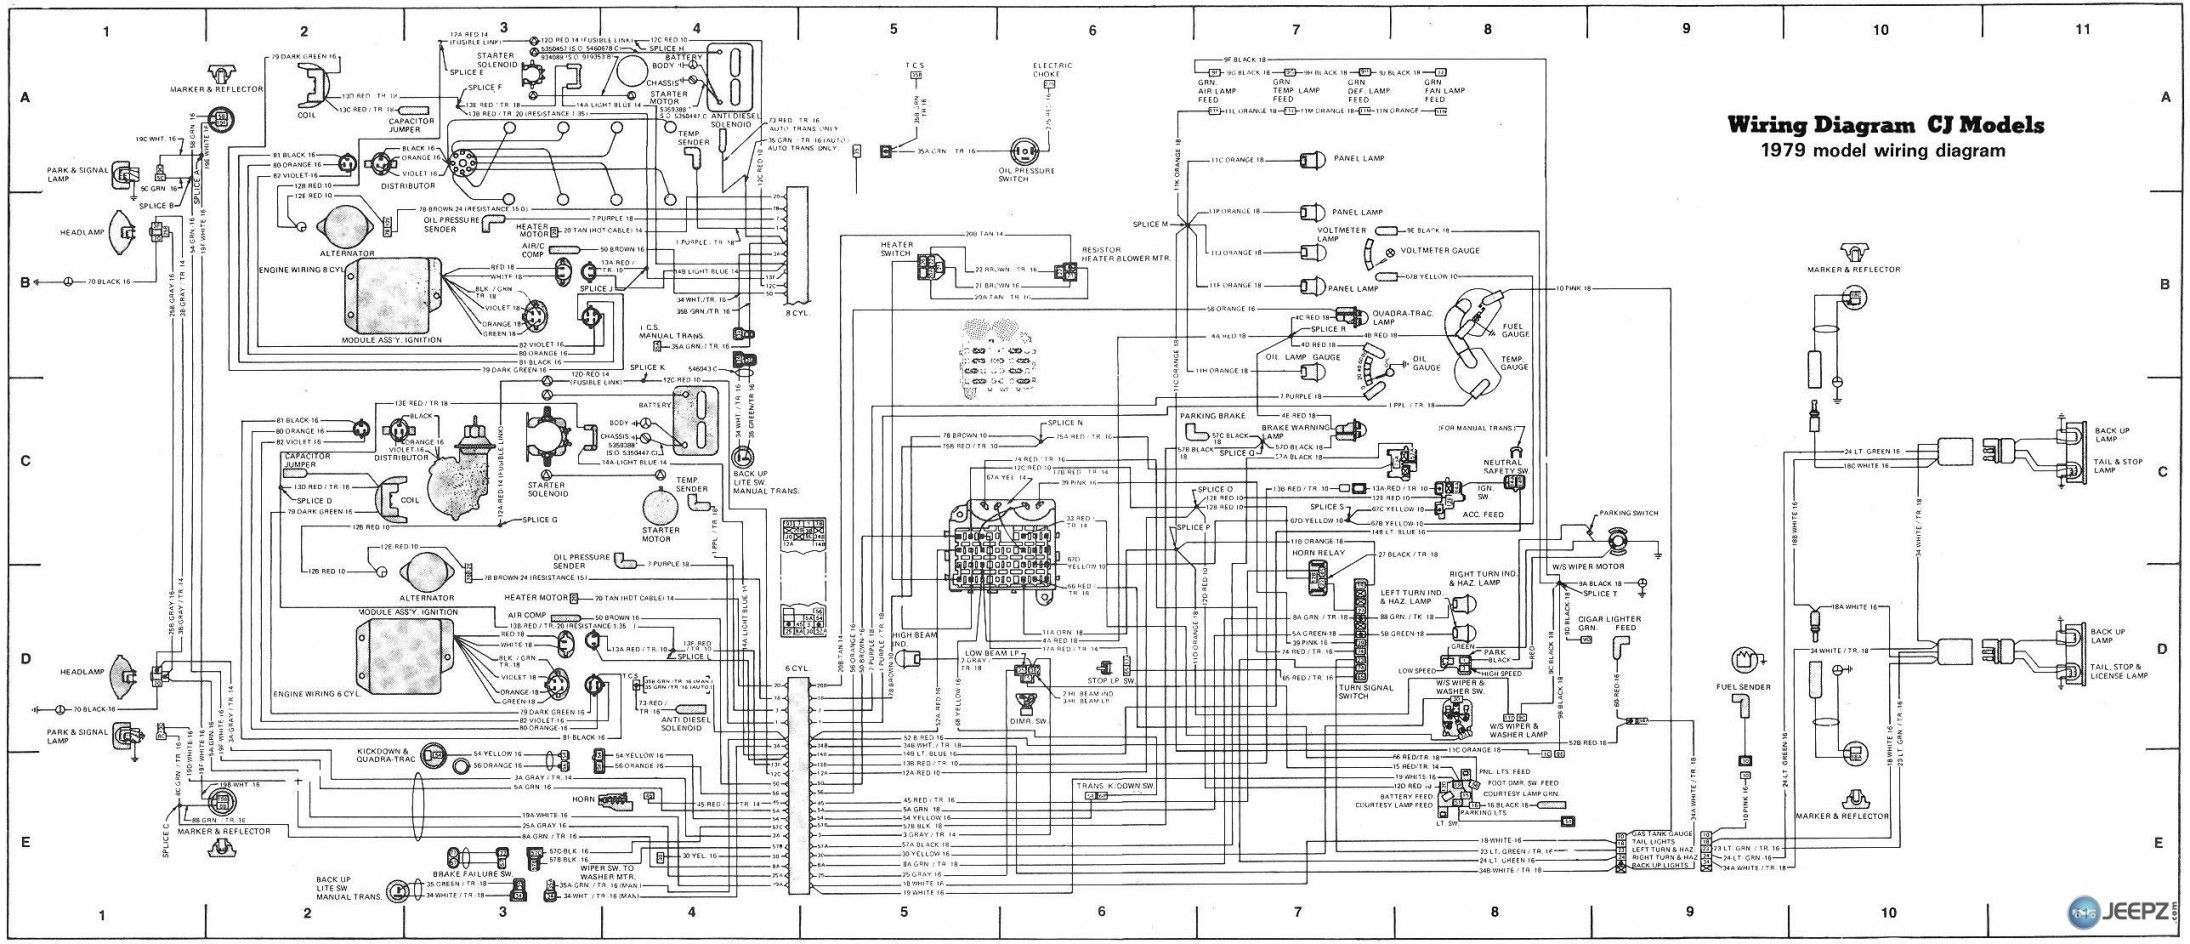 1998 jeep wrangler fuel pump wiring diagram best 1979 jeep cj7 wiring diagram jeep cj7  cj7  willys jeep  best 1979 jeep cj7 wiring diagram